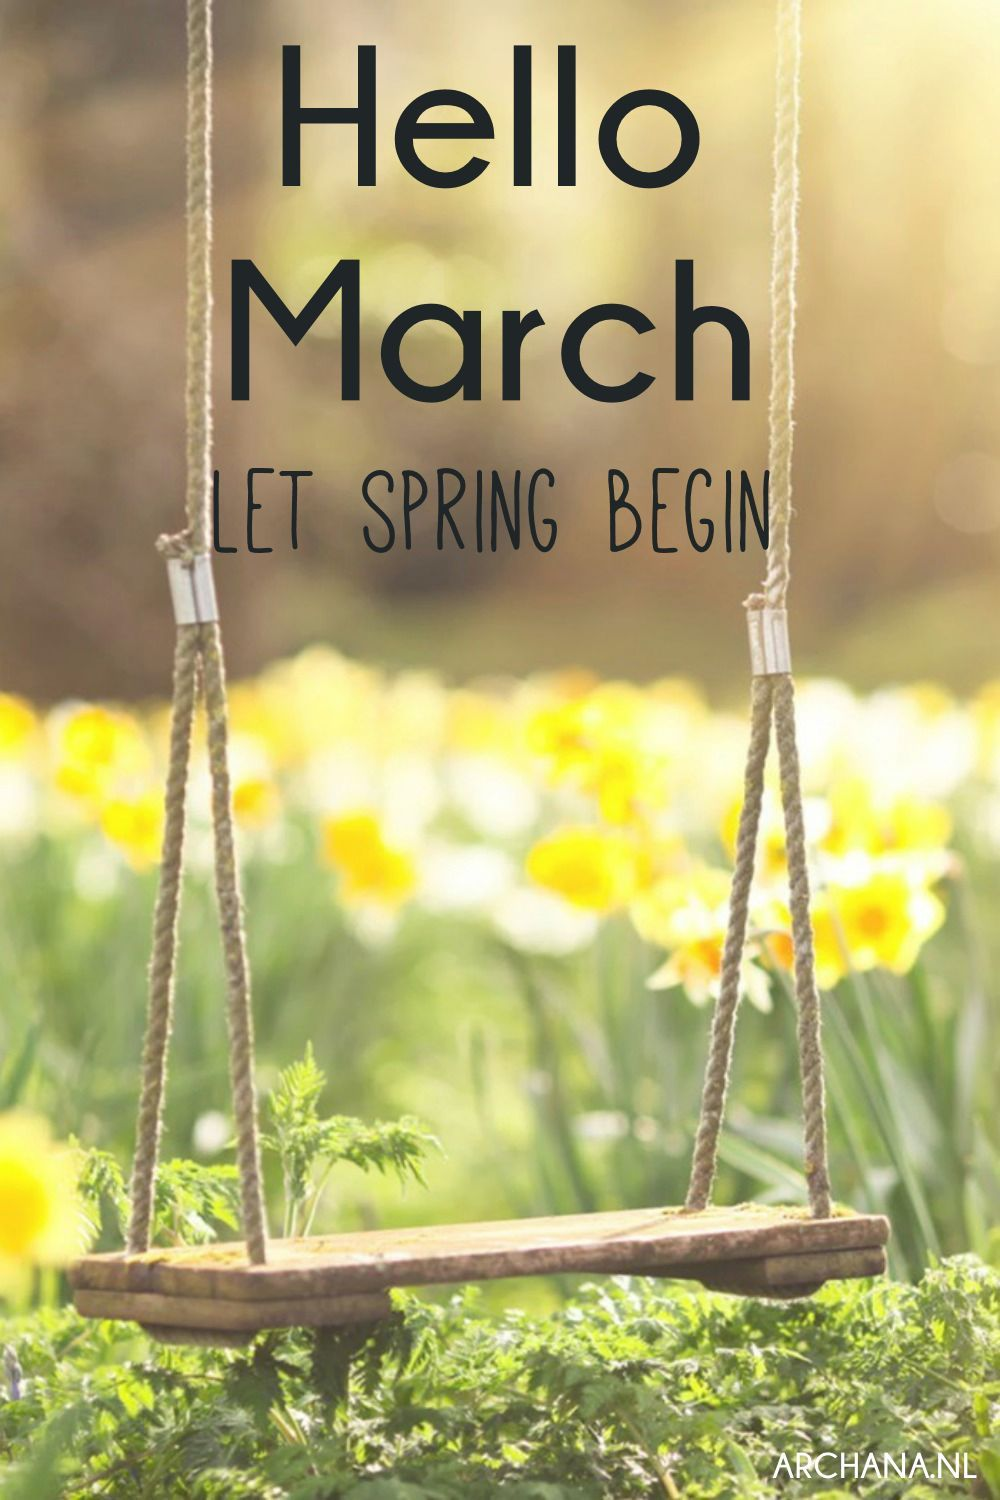 QUOTES Hello march, March and Abundance